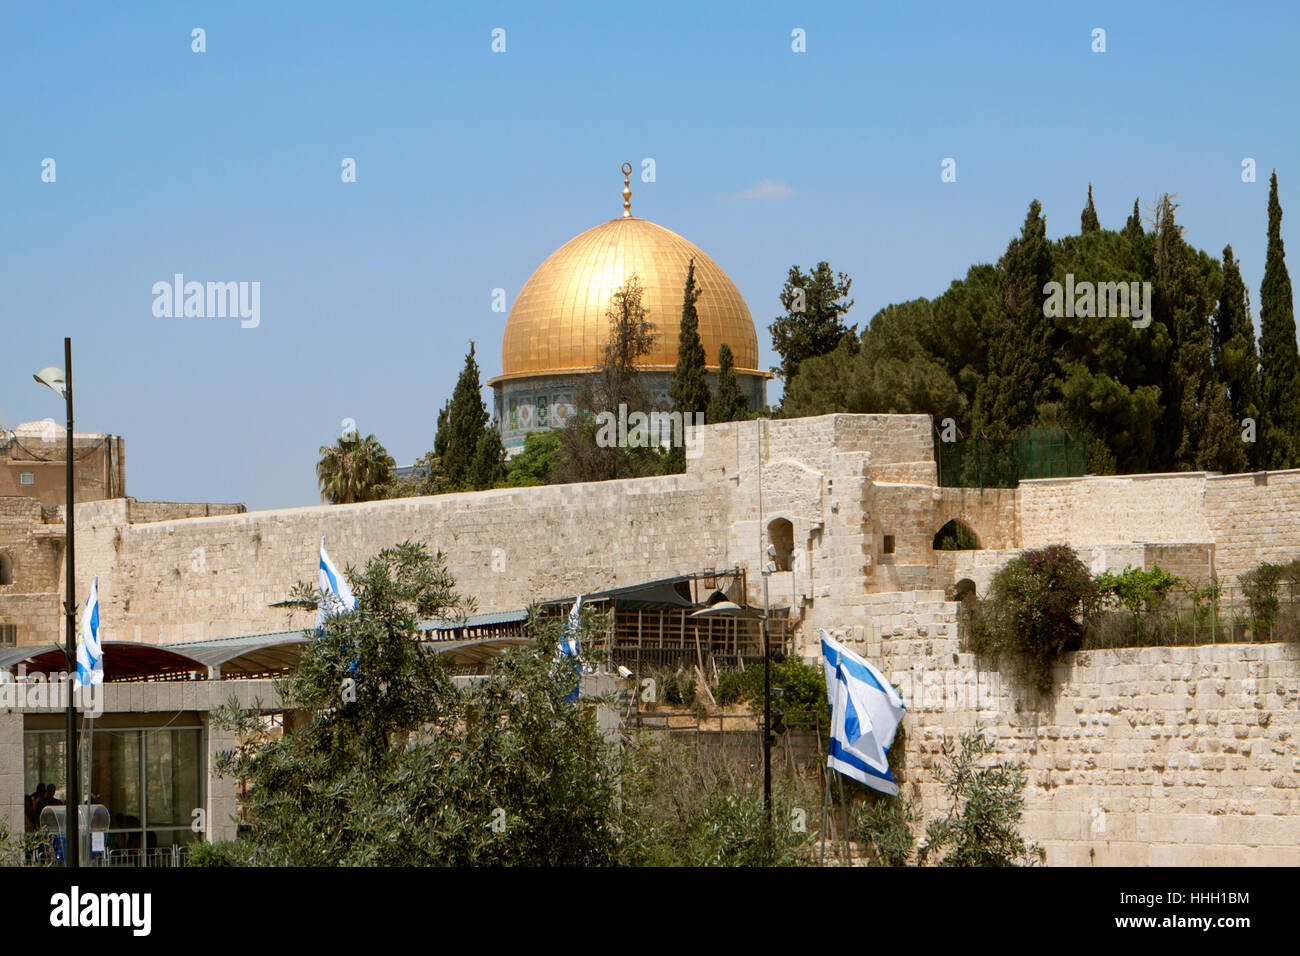 house, building, travel, historical, religion, religious, church, temple, city, - Stock Image